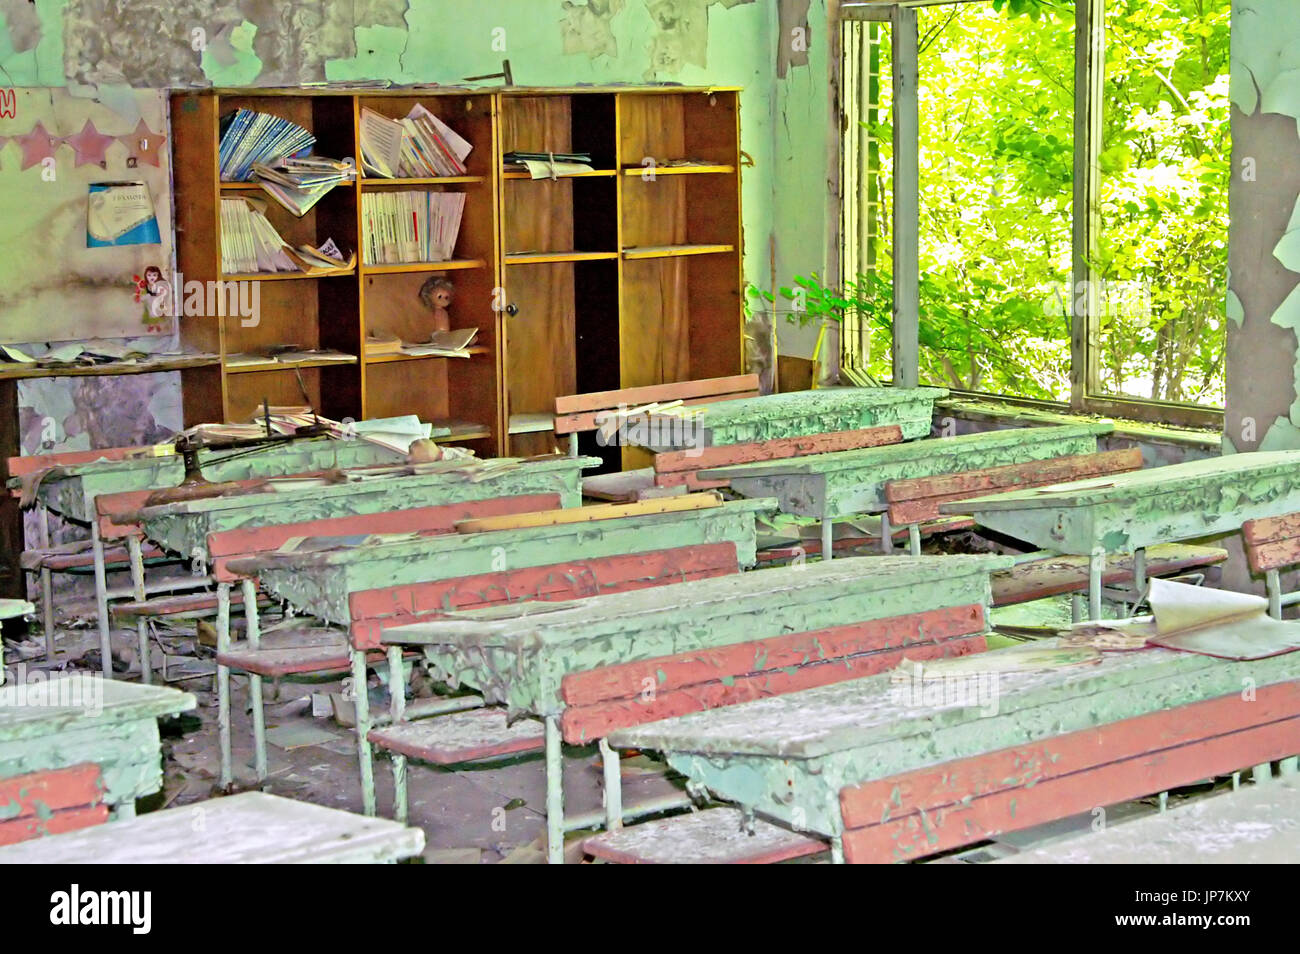 Abandoned Building Interior in school in Chernobyl Zone. Chornobyl Disaster - Stock Image